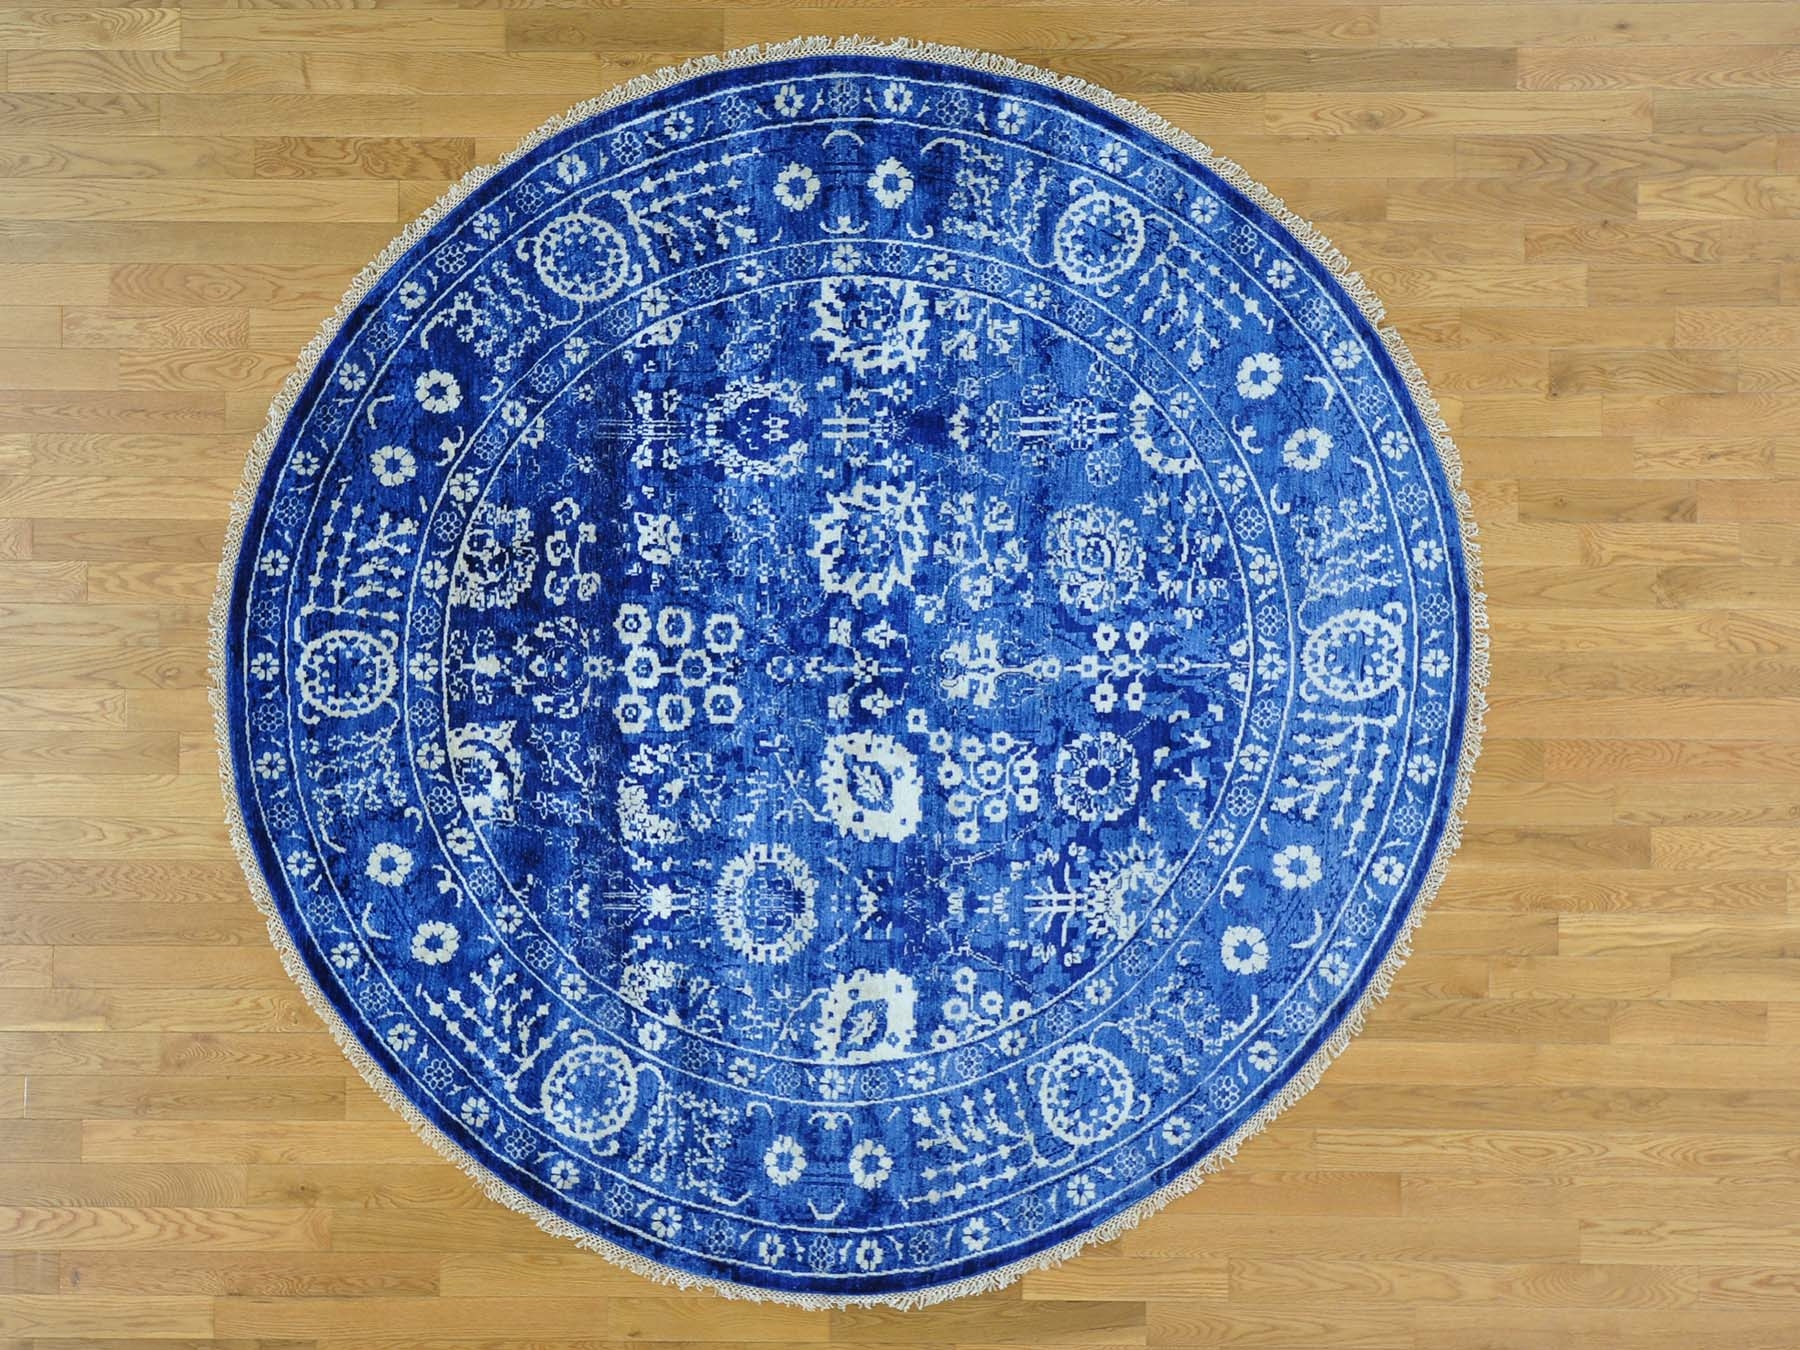 8 X 8 Round Wool And Silk Tone On Tone Tabriz Oriental Rug Within Round Wool Rugs (Image 5 of 15)